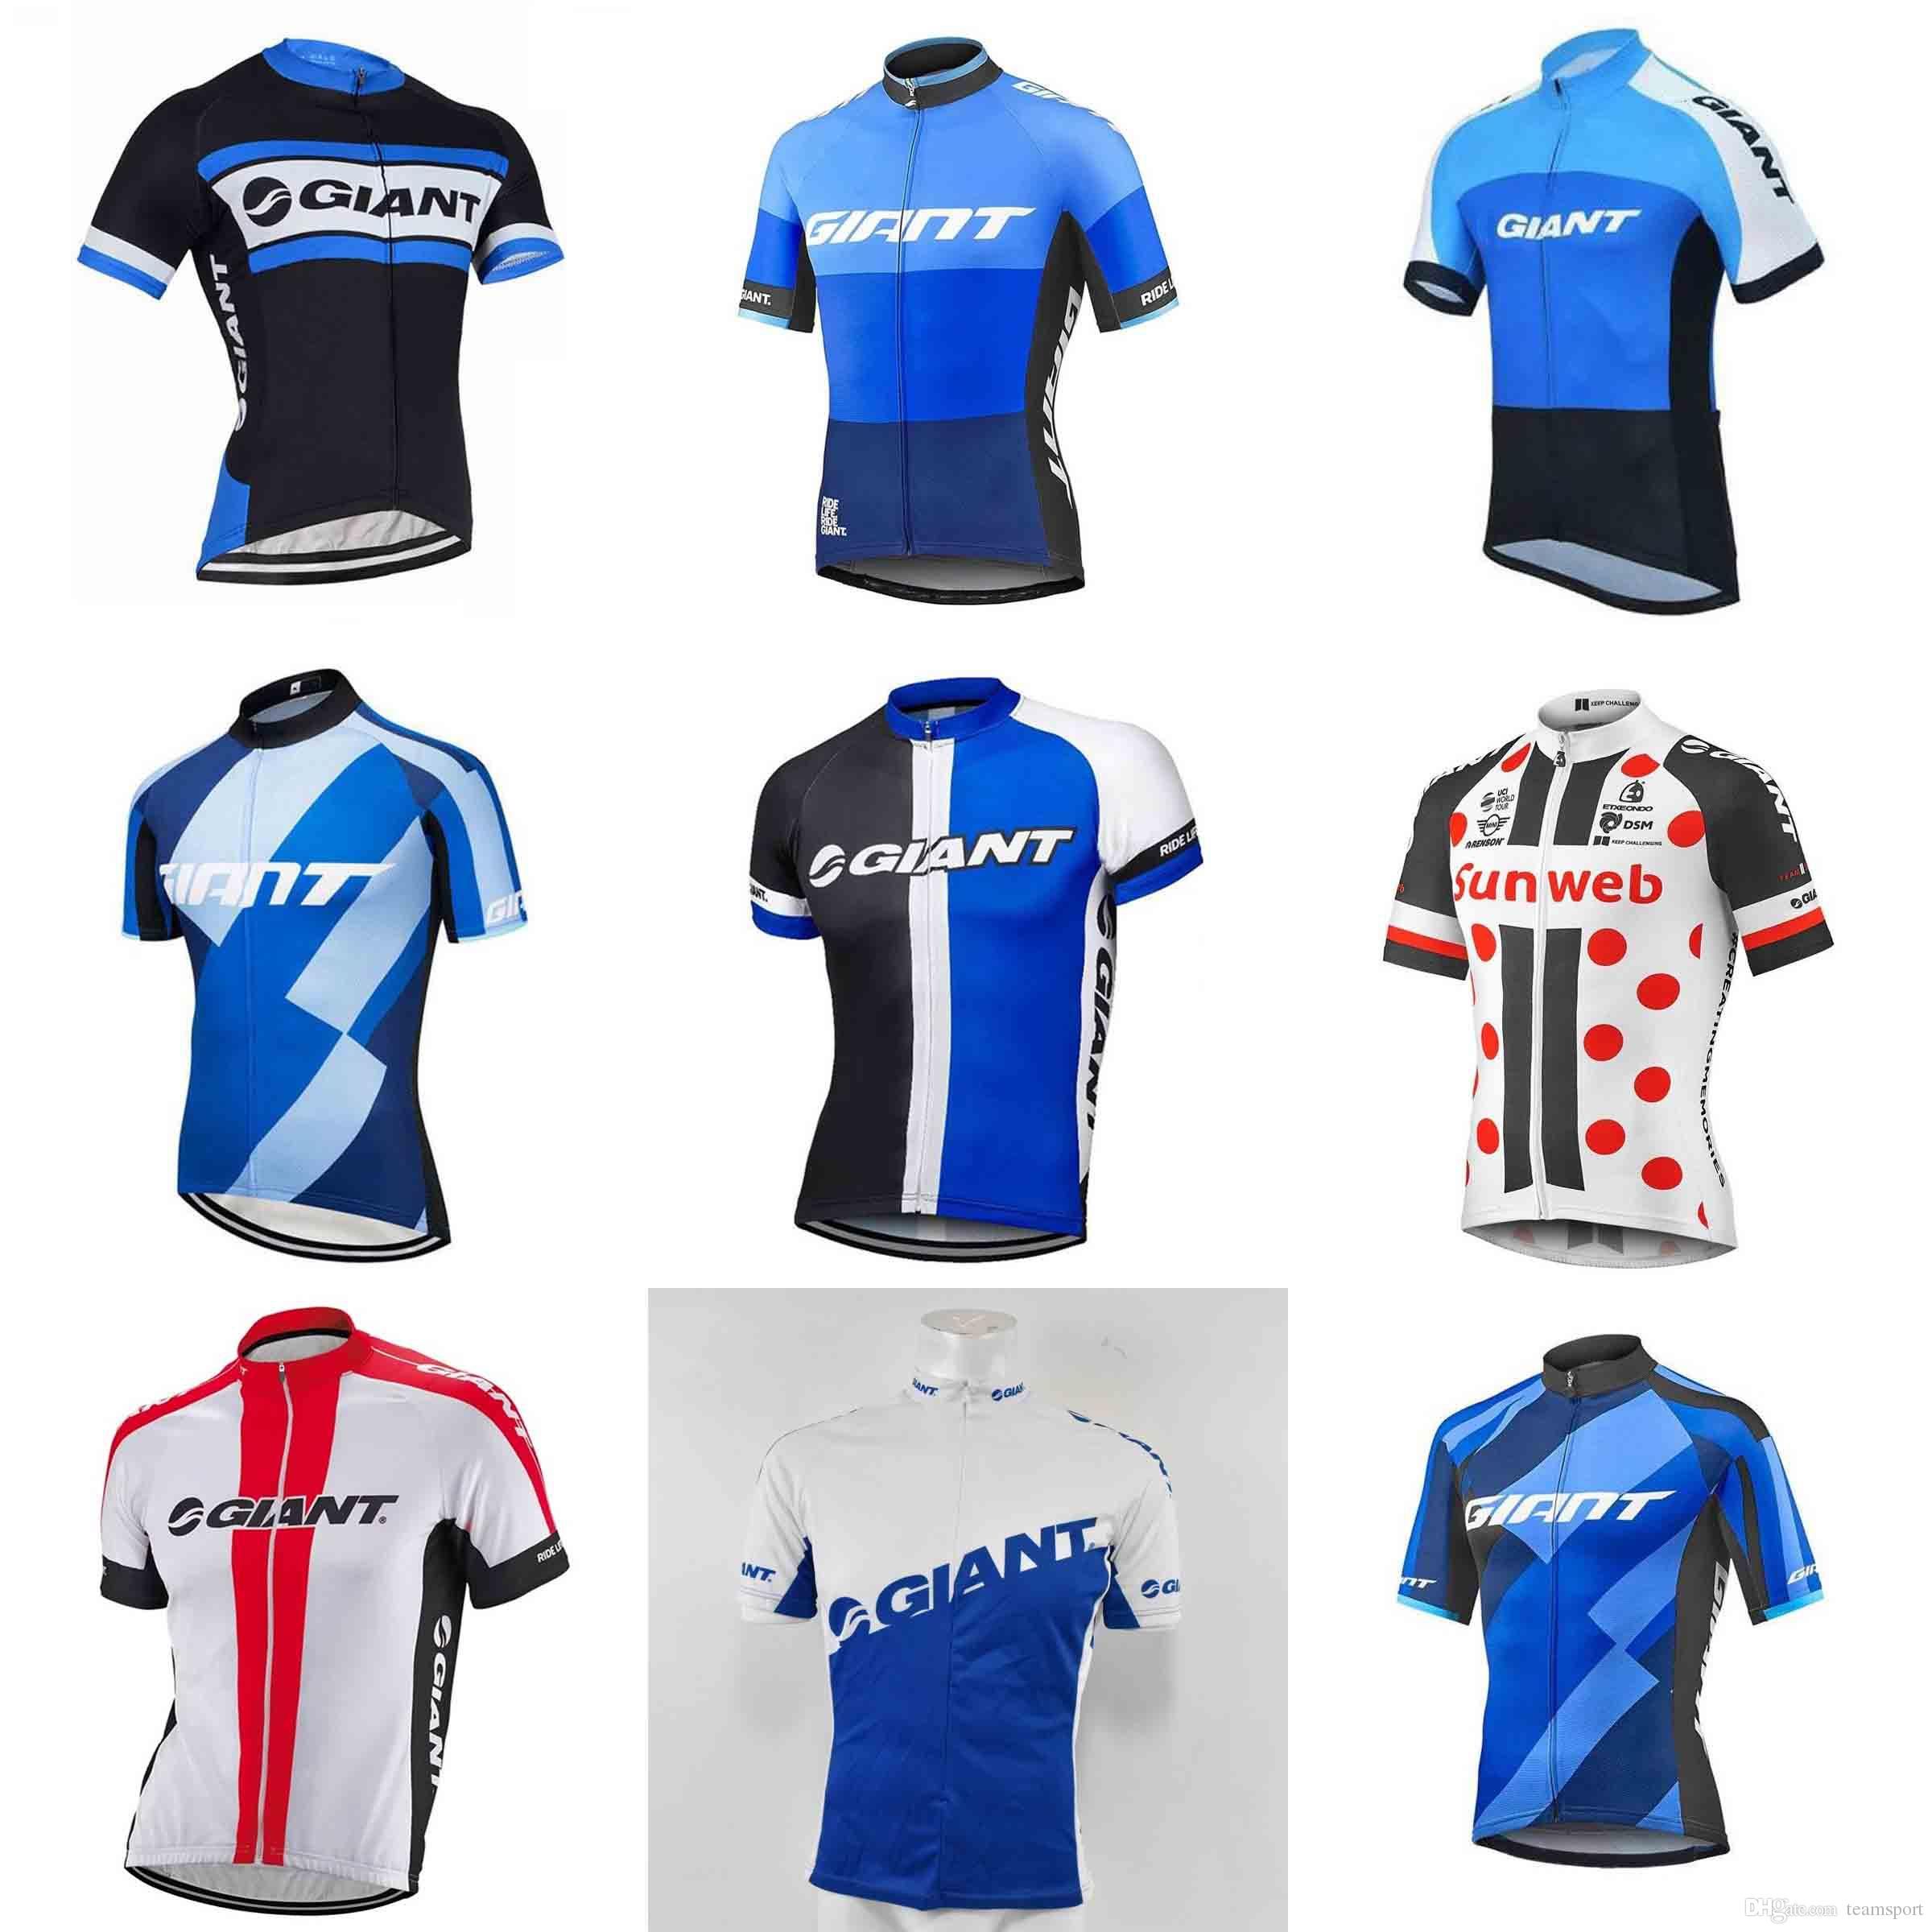 c334f9fb9 GIANT Team Cycling Jersey 2018 T Shirt Cycling Bike Jersey Maillot Ciclismo  Breathable Quick Dry Bike Clothes Cycling 840205 Cycling Gloves Womens  Shirts ...